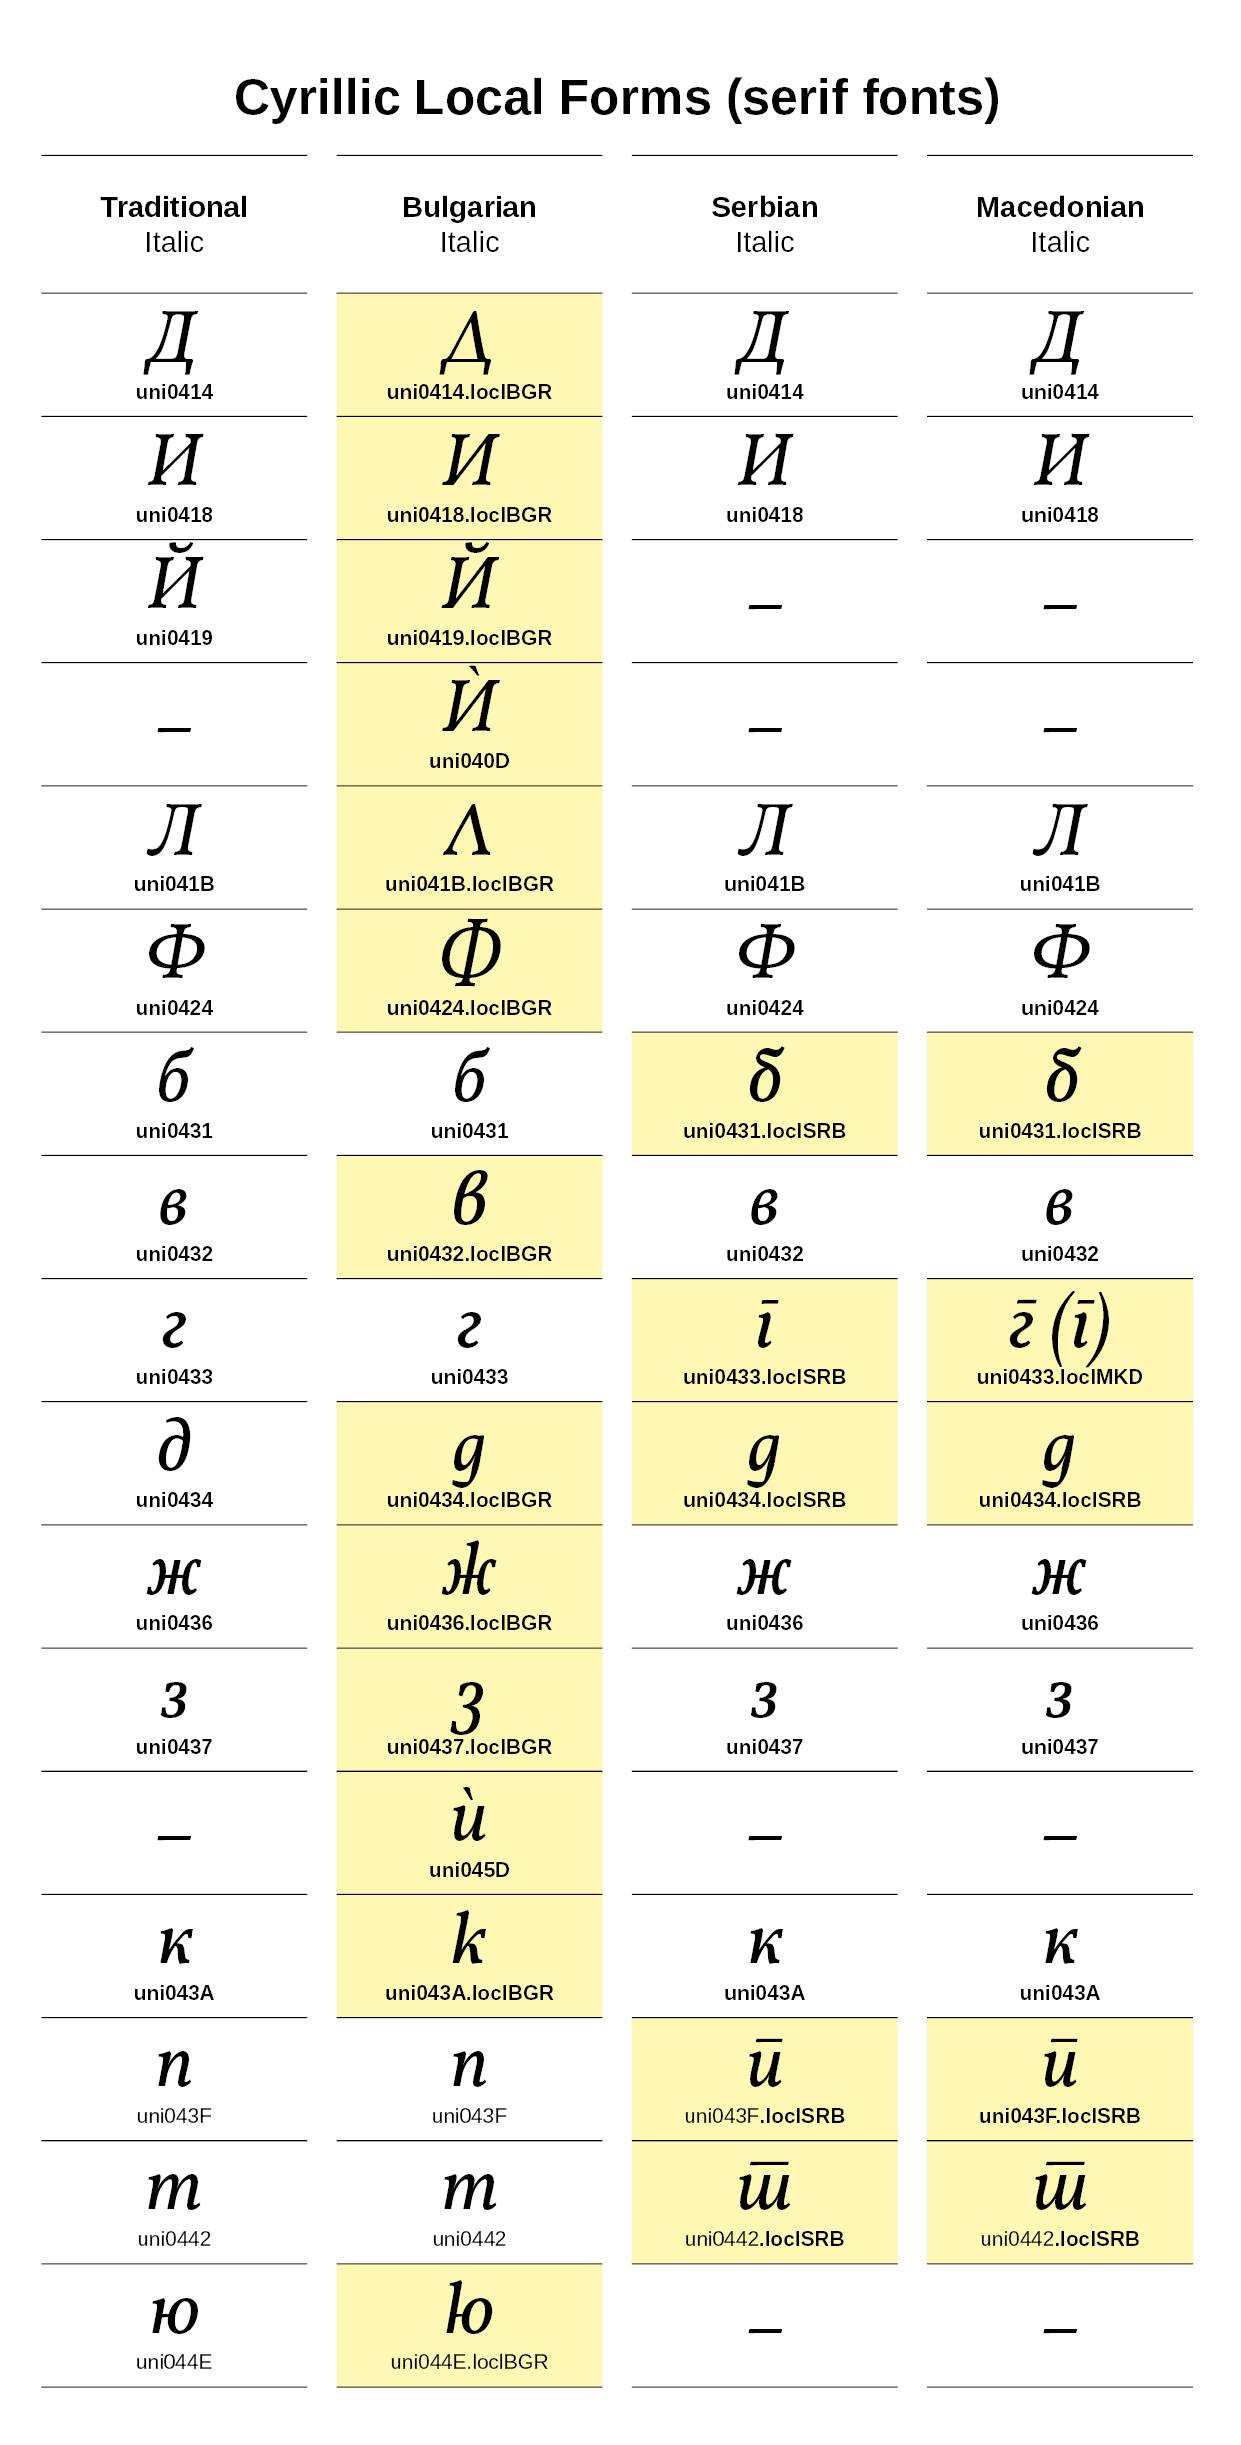 Cyrillic Local Forms